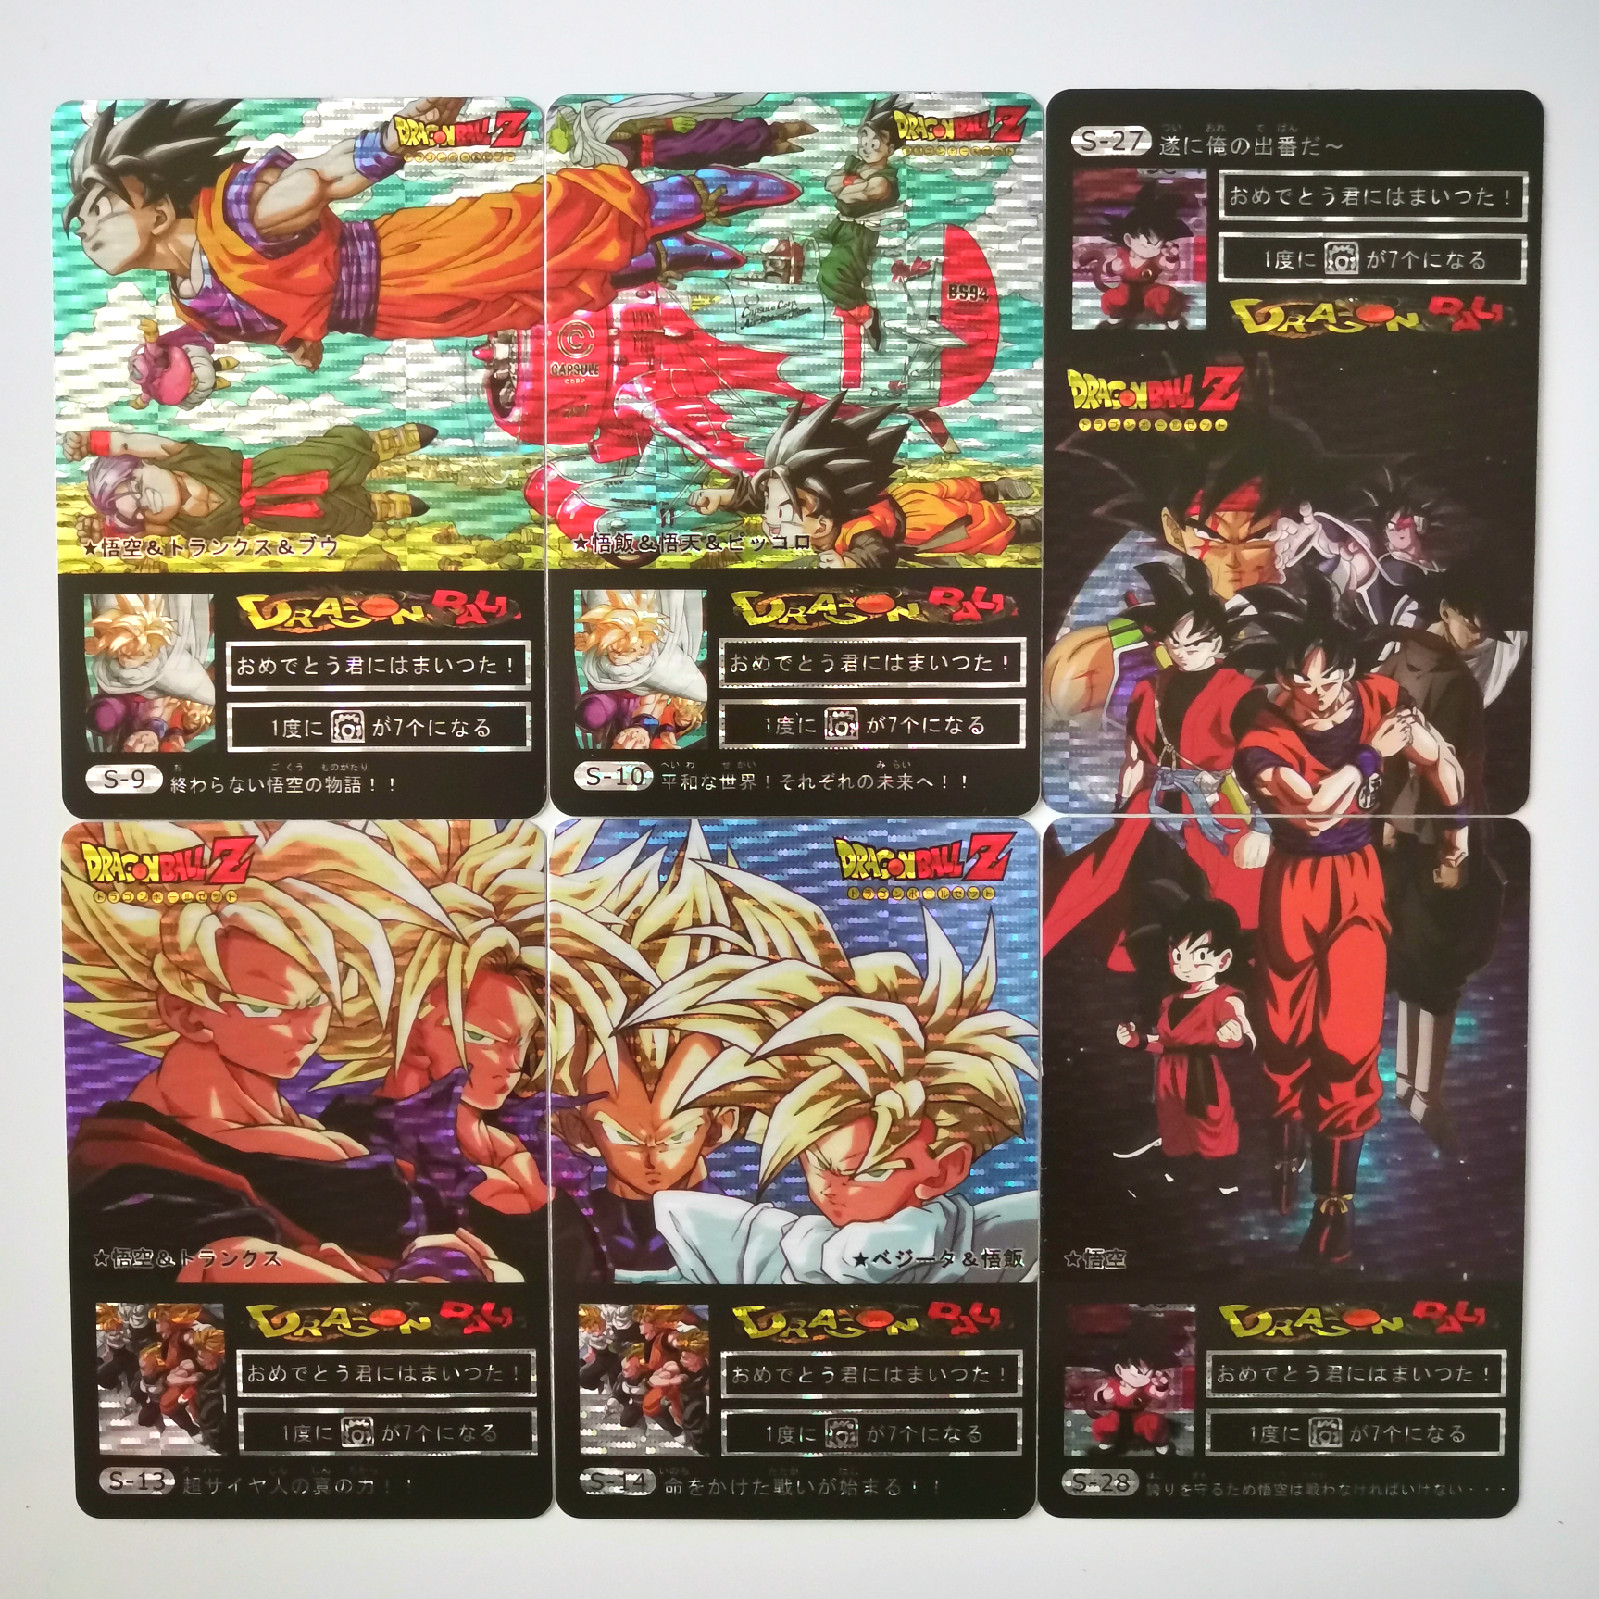 32pcs/set Super Dragon Ball Heroes Battle Card Ultra Instinct Goku Vegeta Game Collection Double Chess Anime Cards